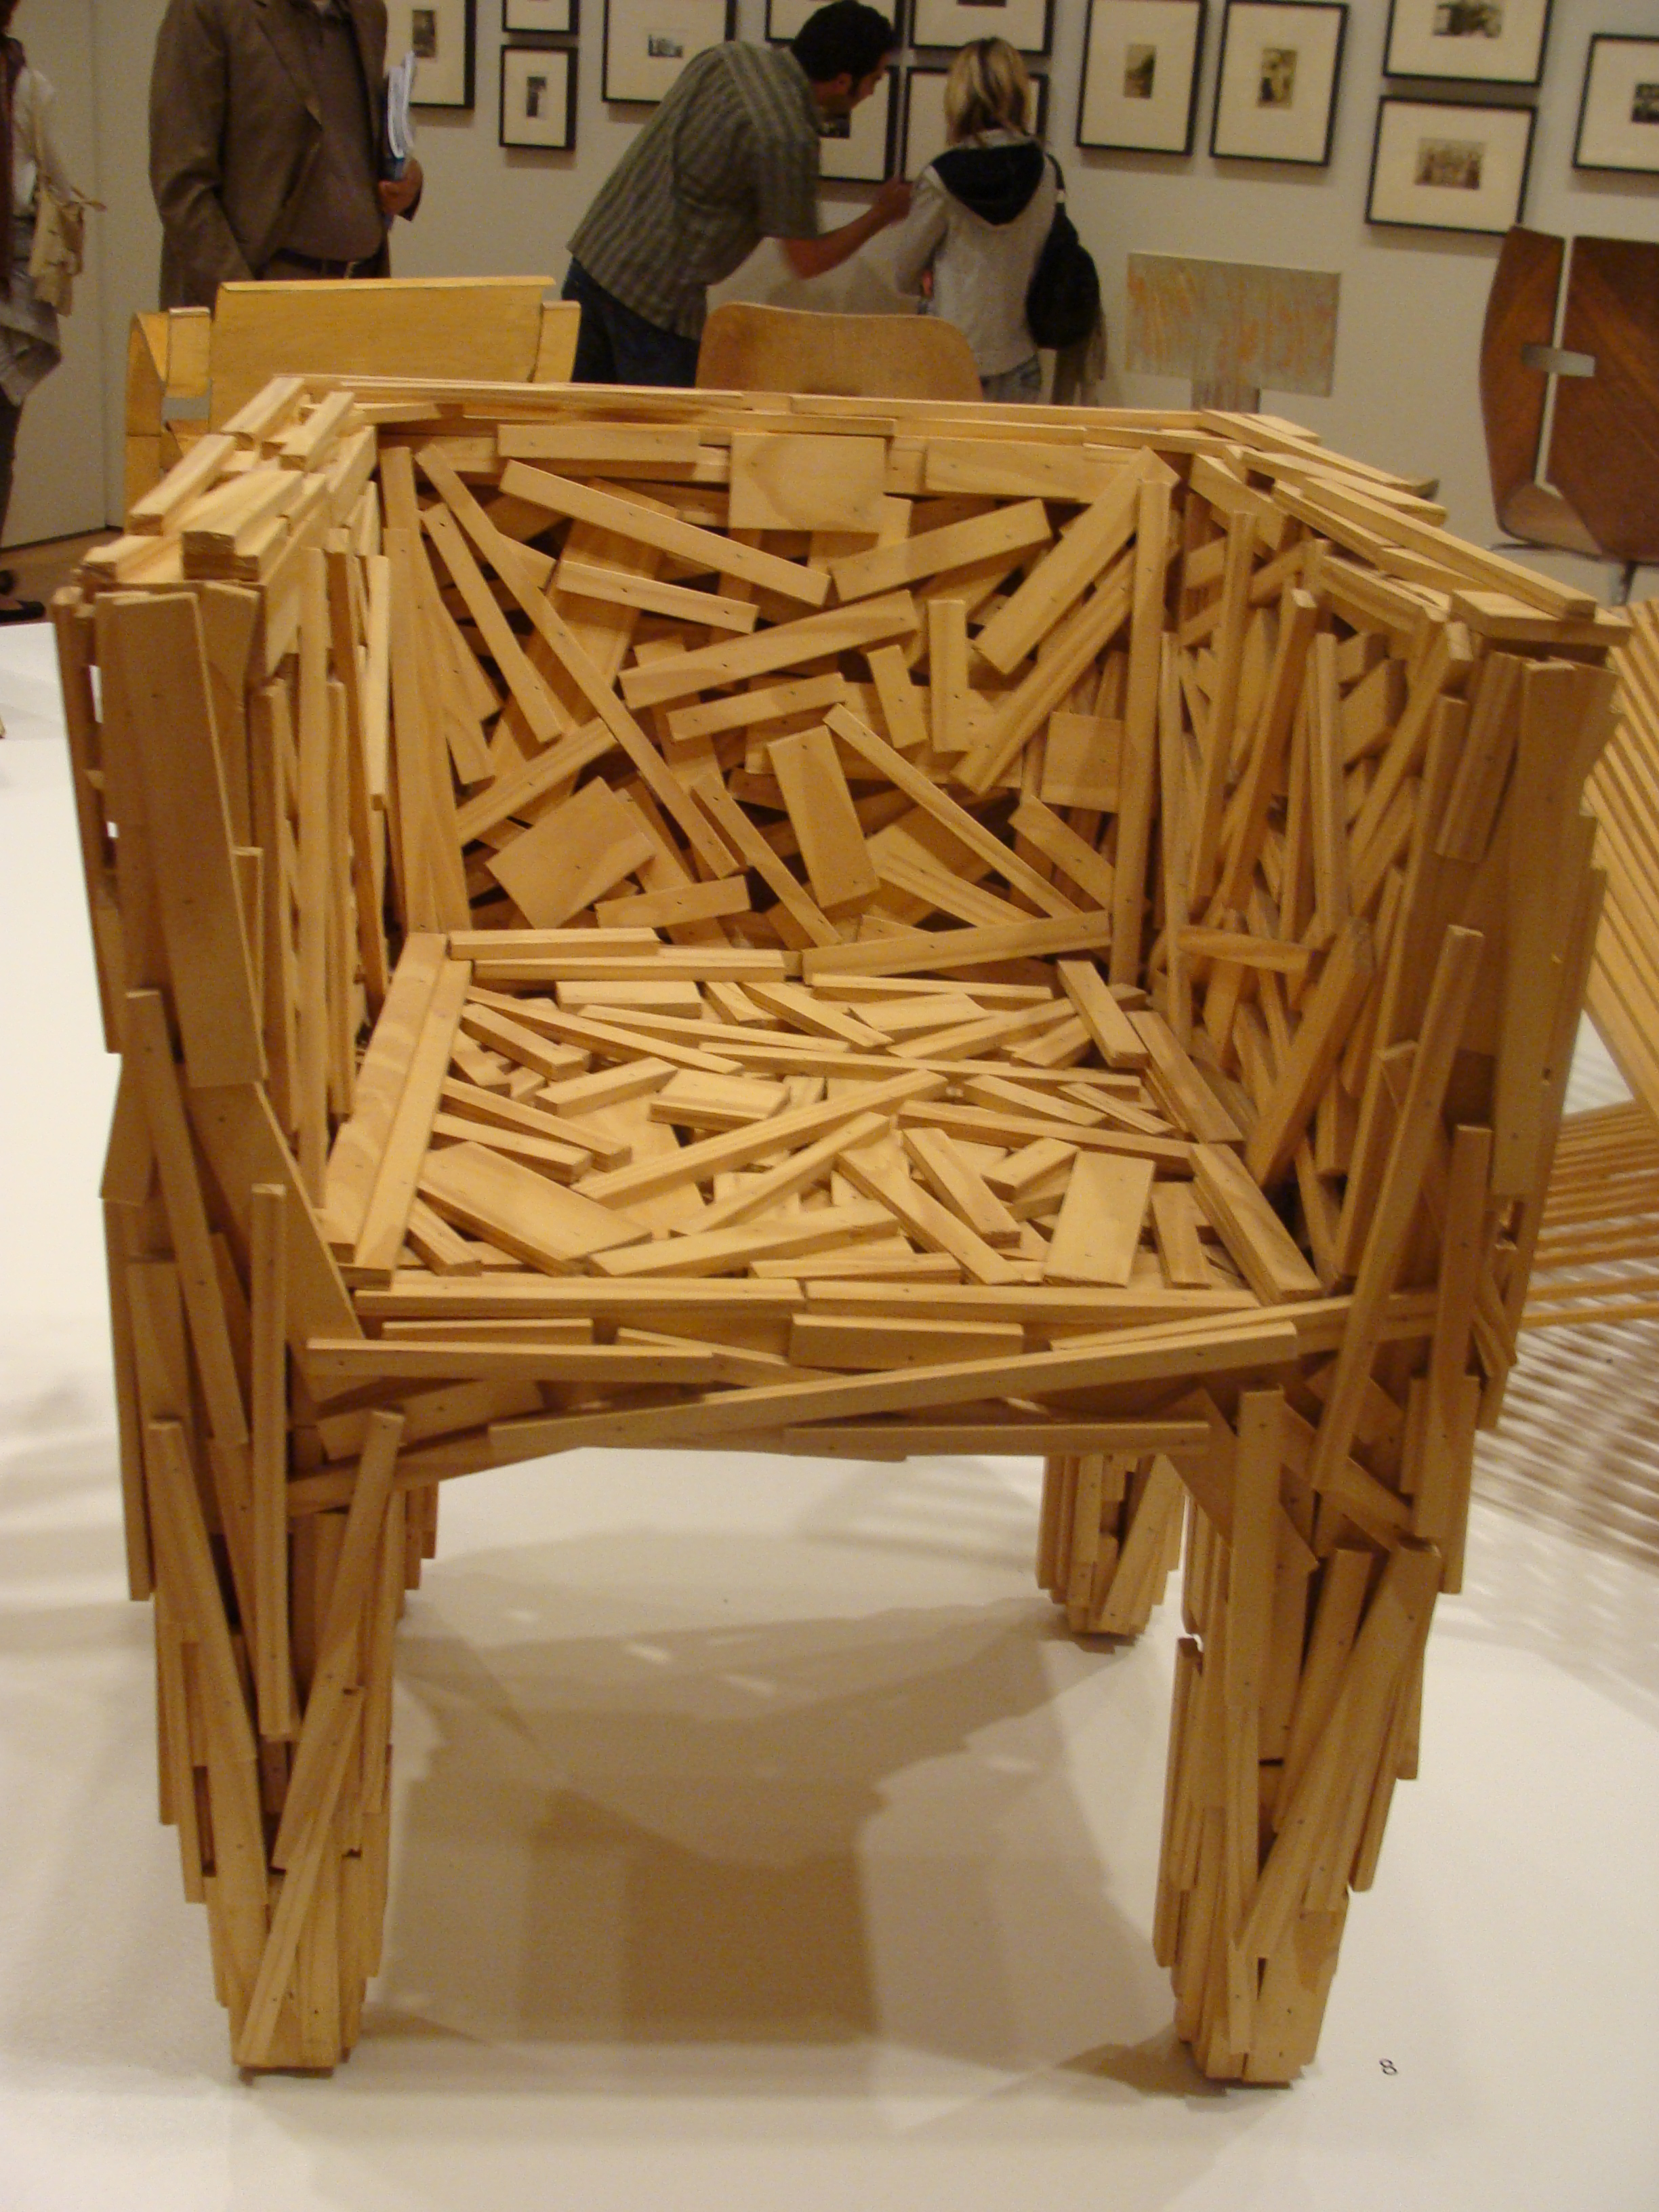 Easy wooden chair designs - Diy Wooden Chairs Designs Wooden Pdf Wooden Marble Run Plans